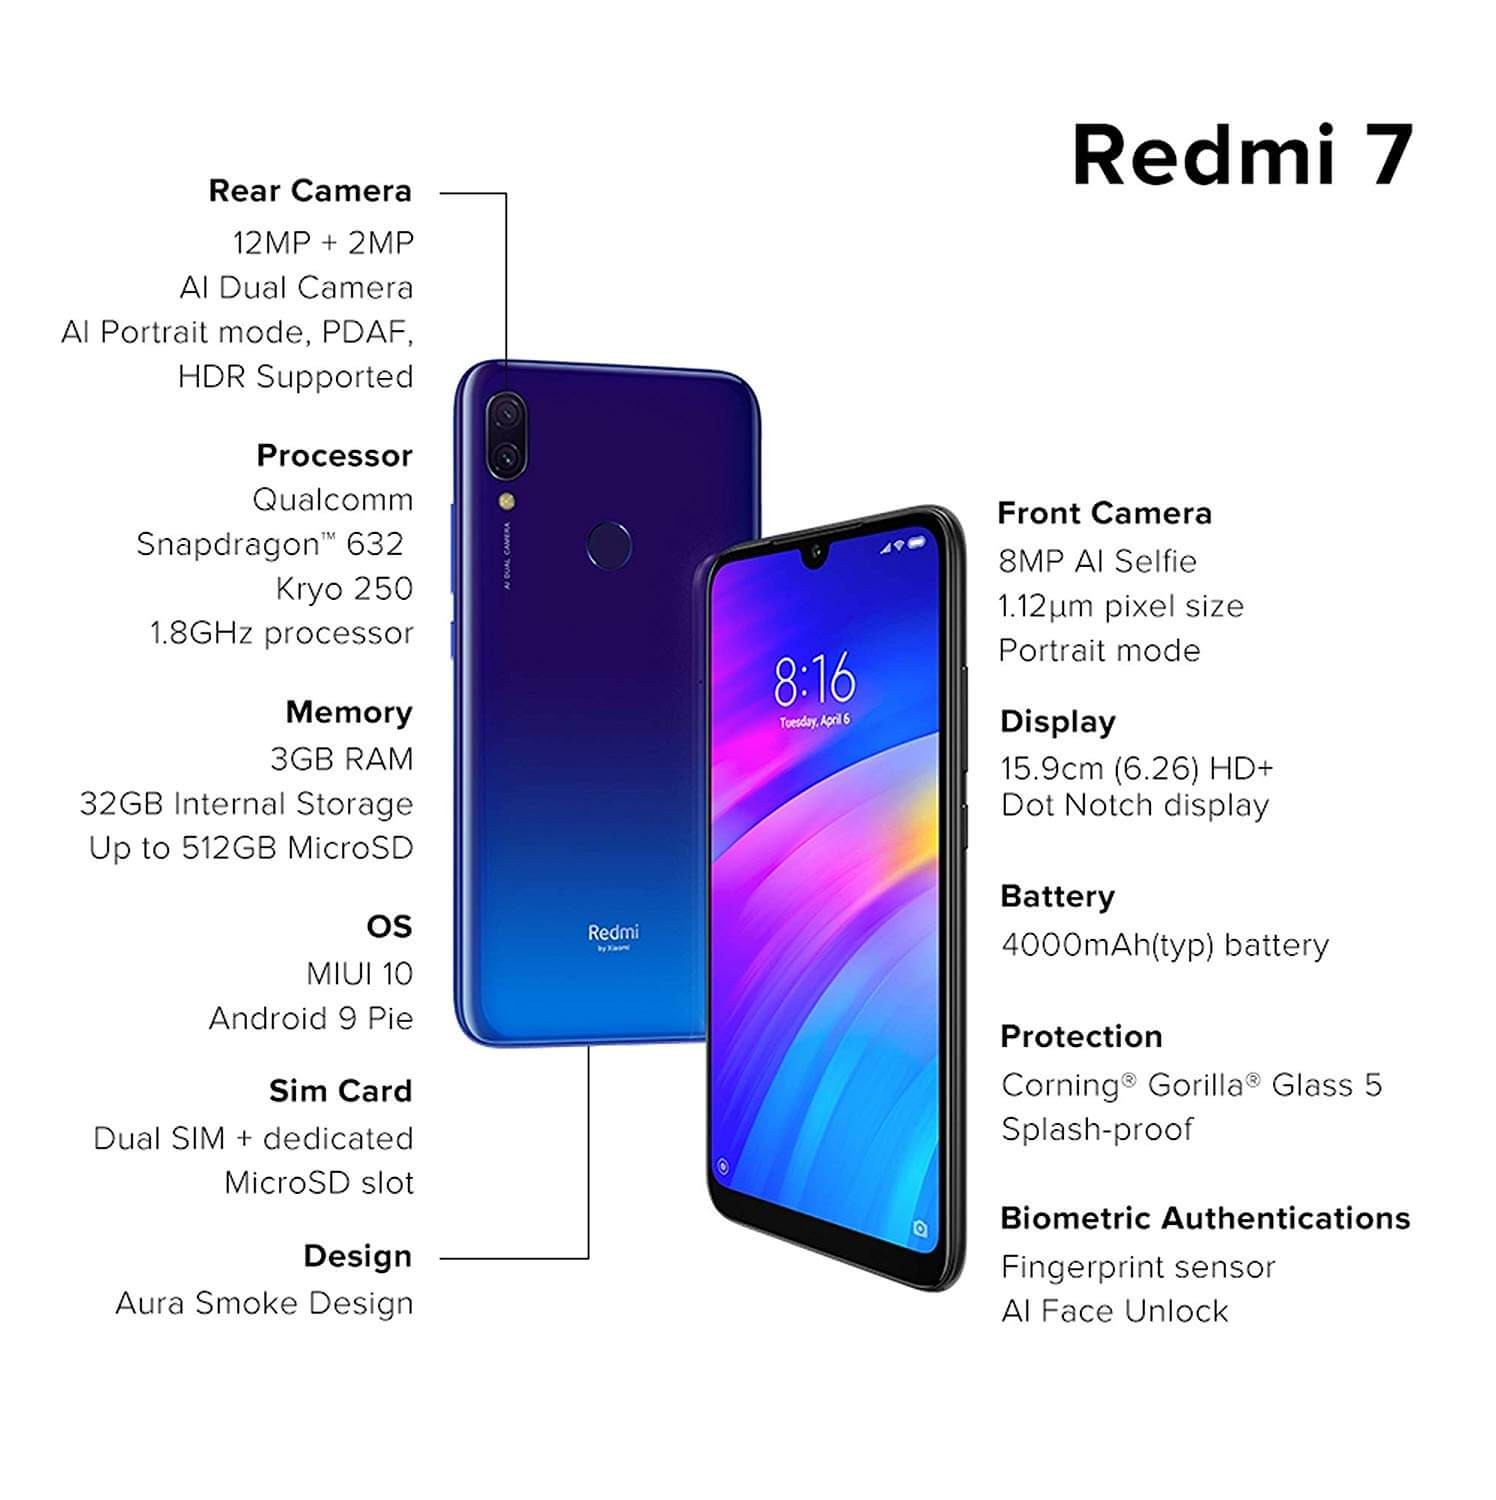 Top 10 Redmi Mobile